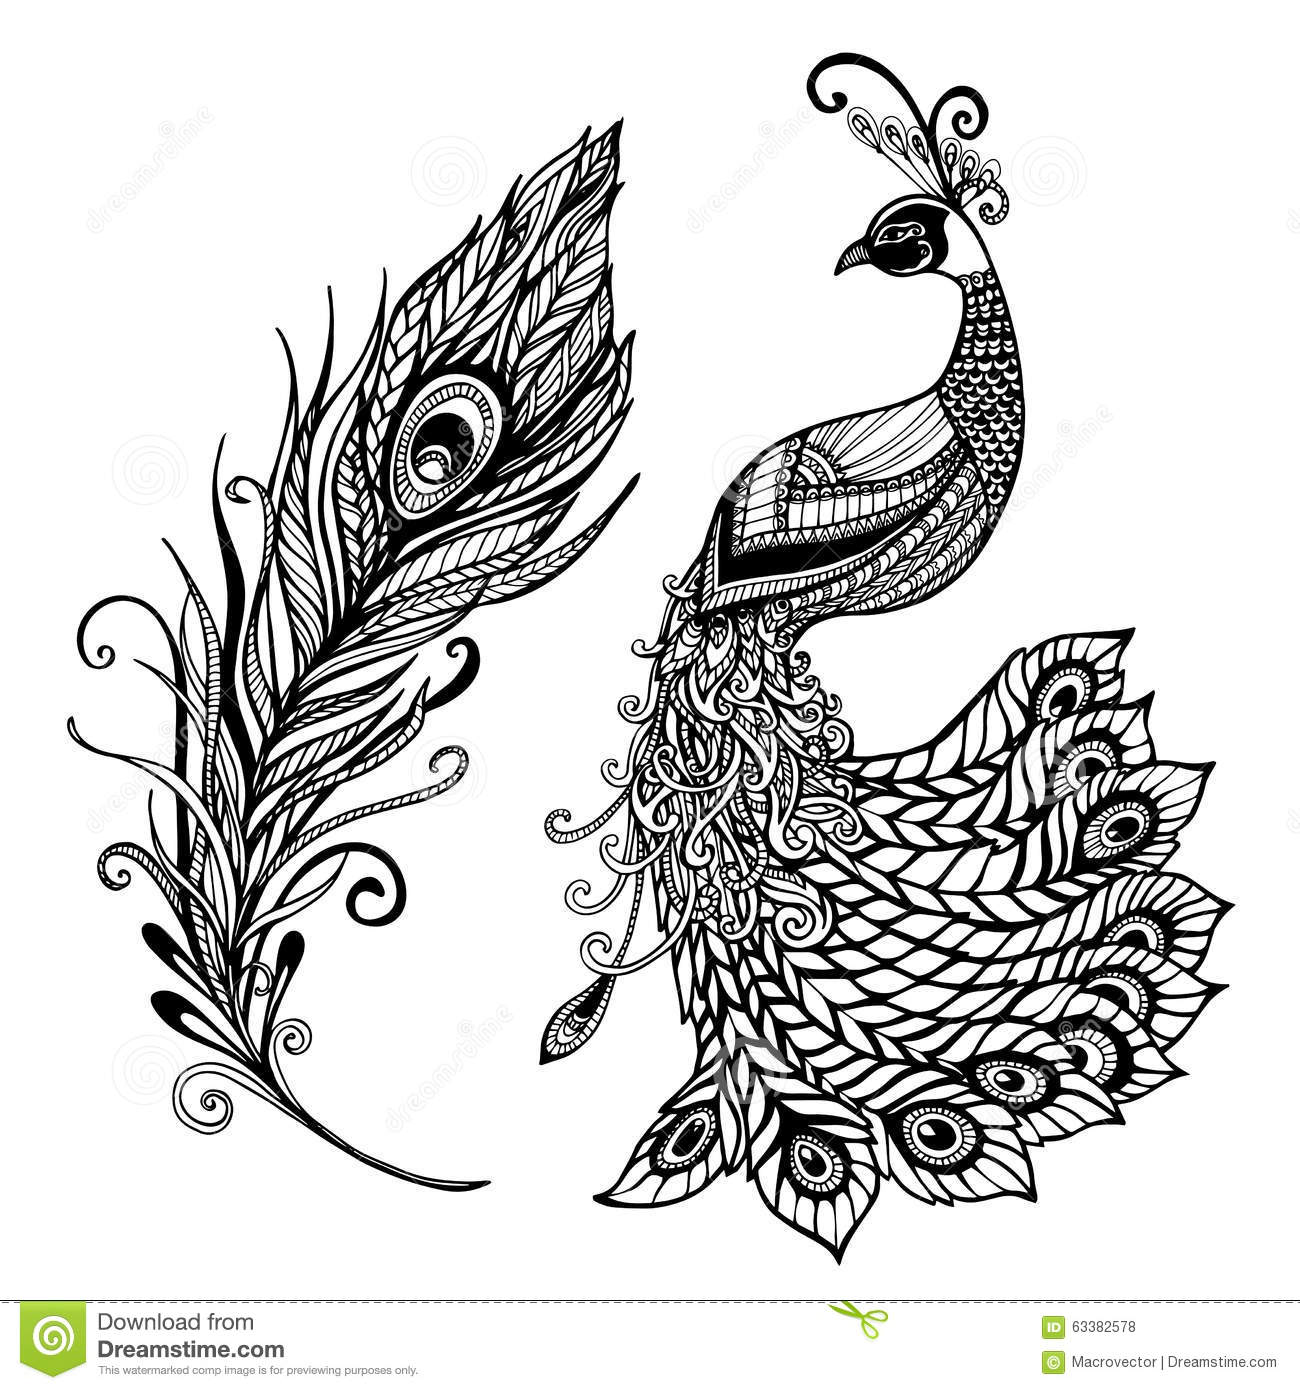 Superieur Peacock Feather Design Black Doodle Print